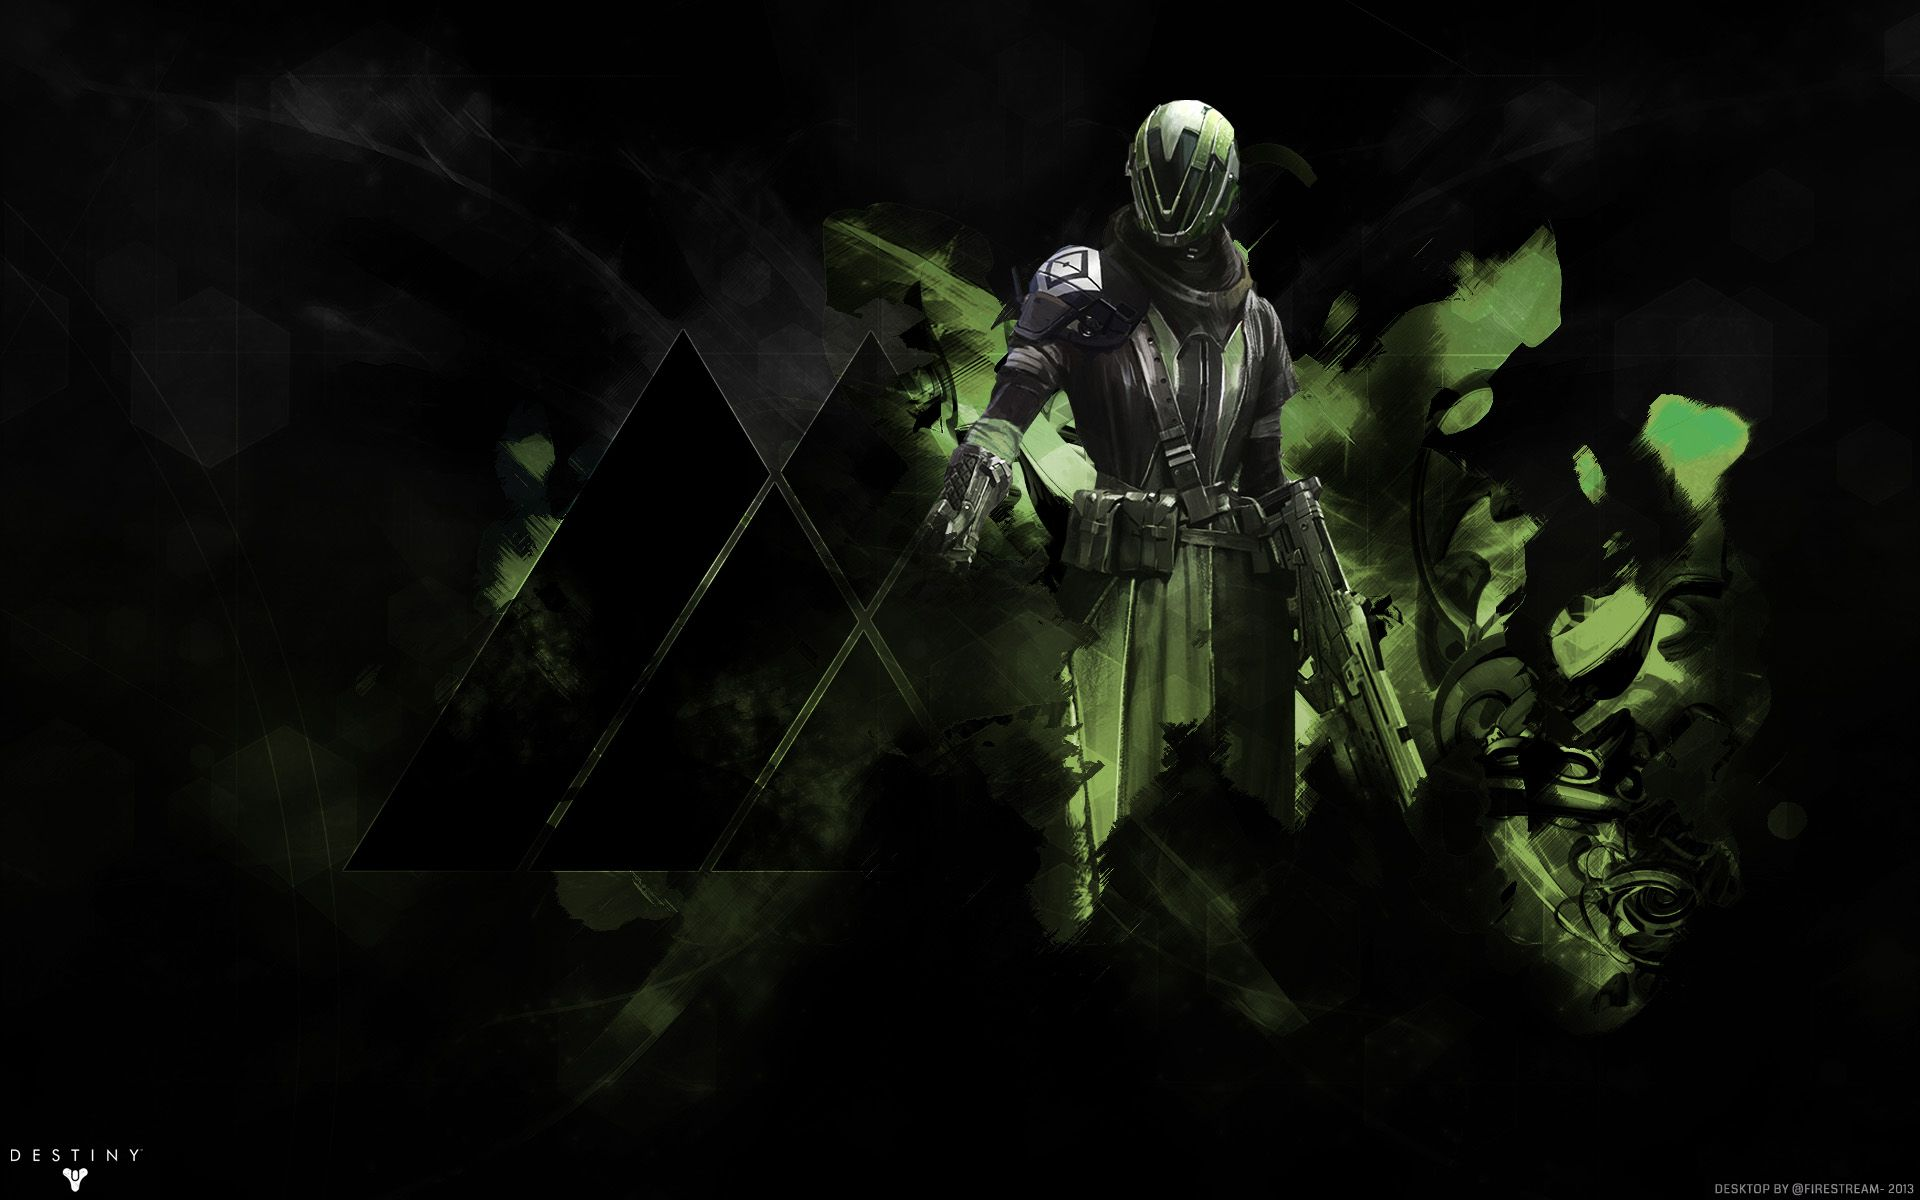 A Warlock wallpaper Destiny wallpaper hd, Destiny